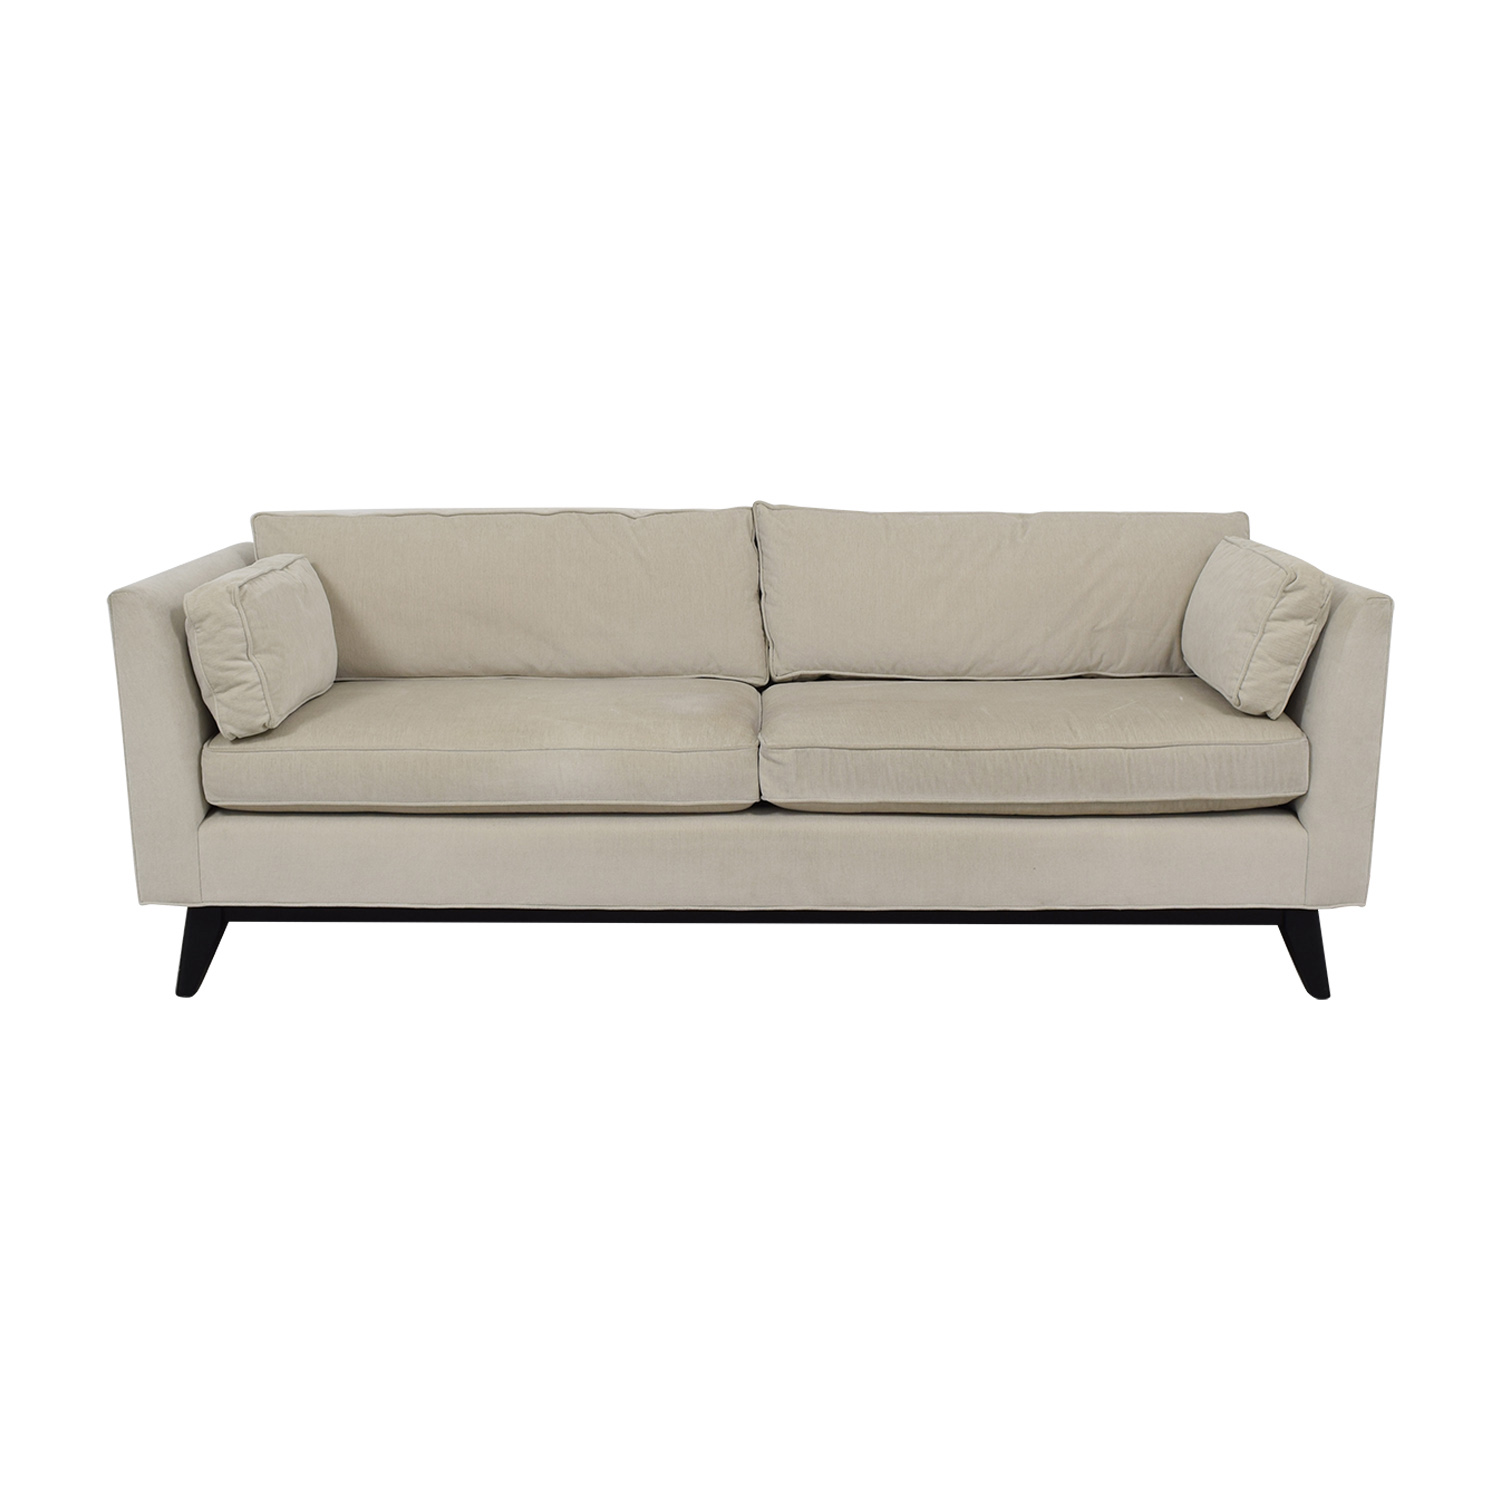 Mitchell Gold + Bob Williams Mitchell Gold + Bob Williams Ainsley White Two-Cushion Sofa on sale